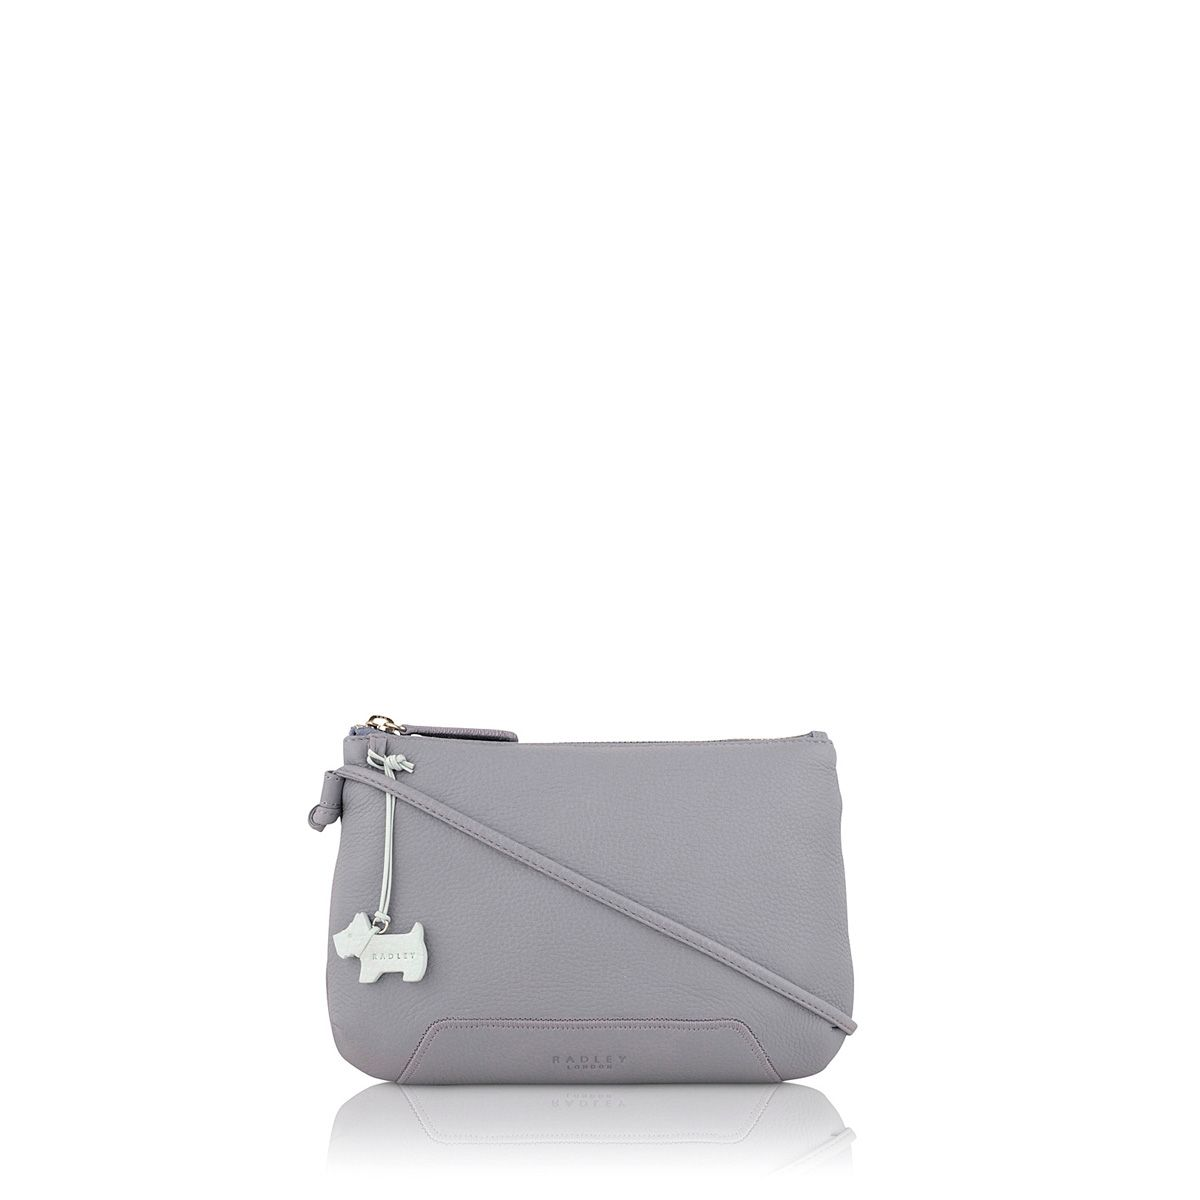 Dayton purple small leather cross body bag